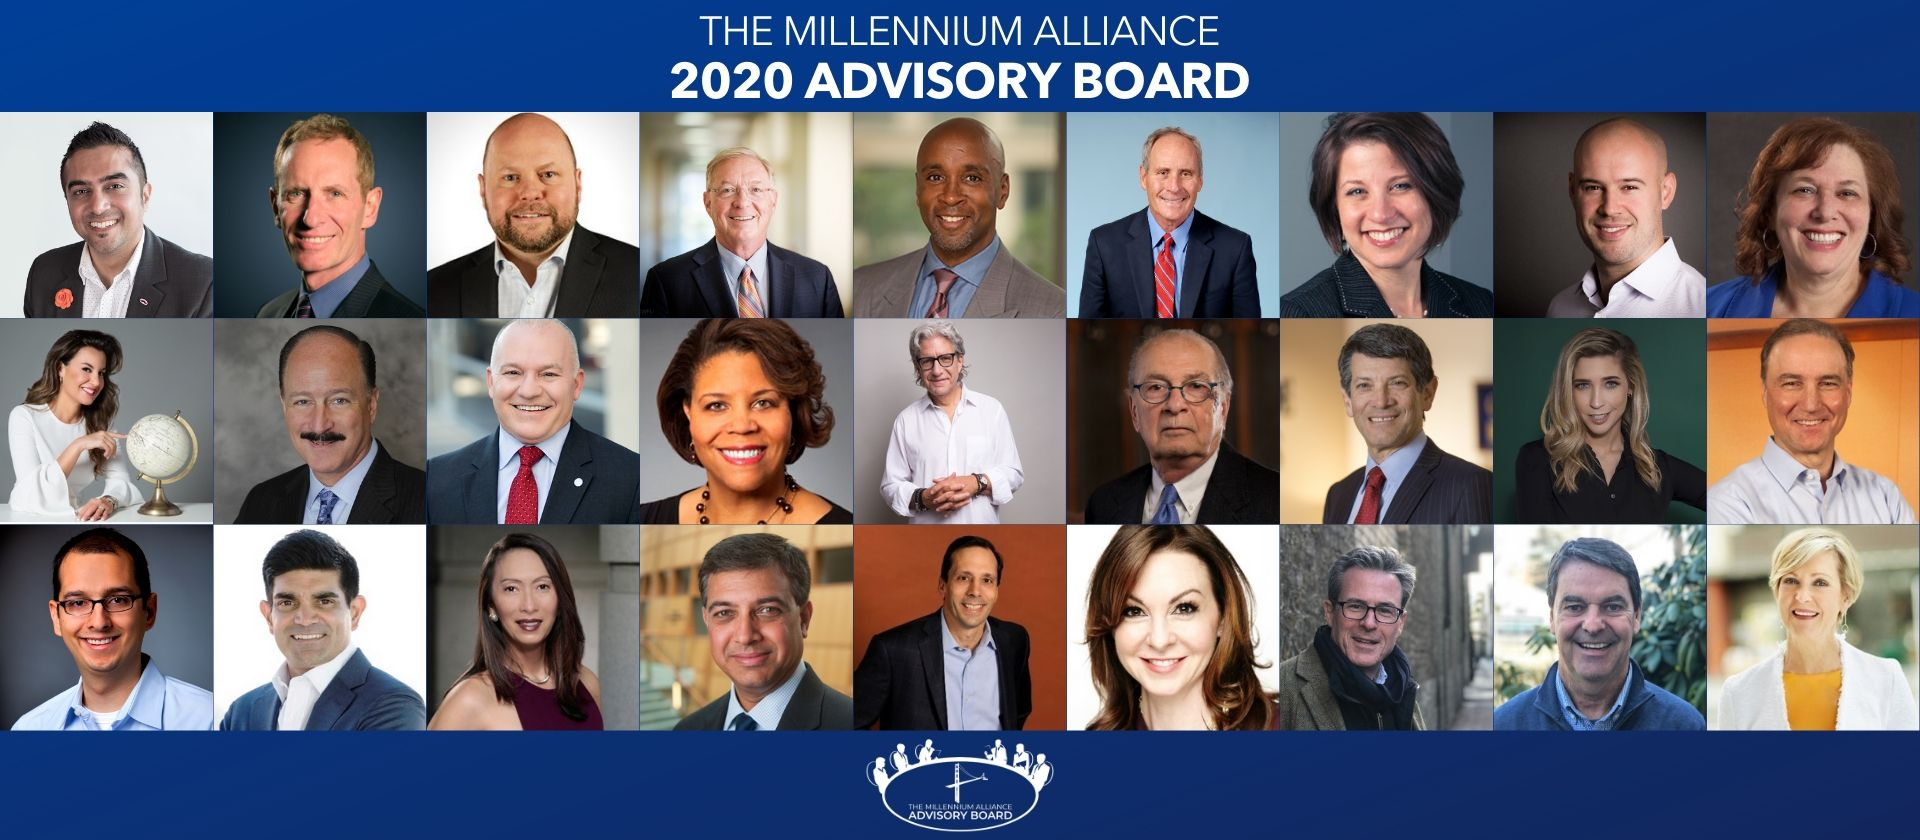 2020 Advisory Board Millennium Alliance Executives